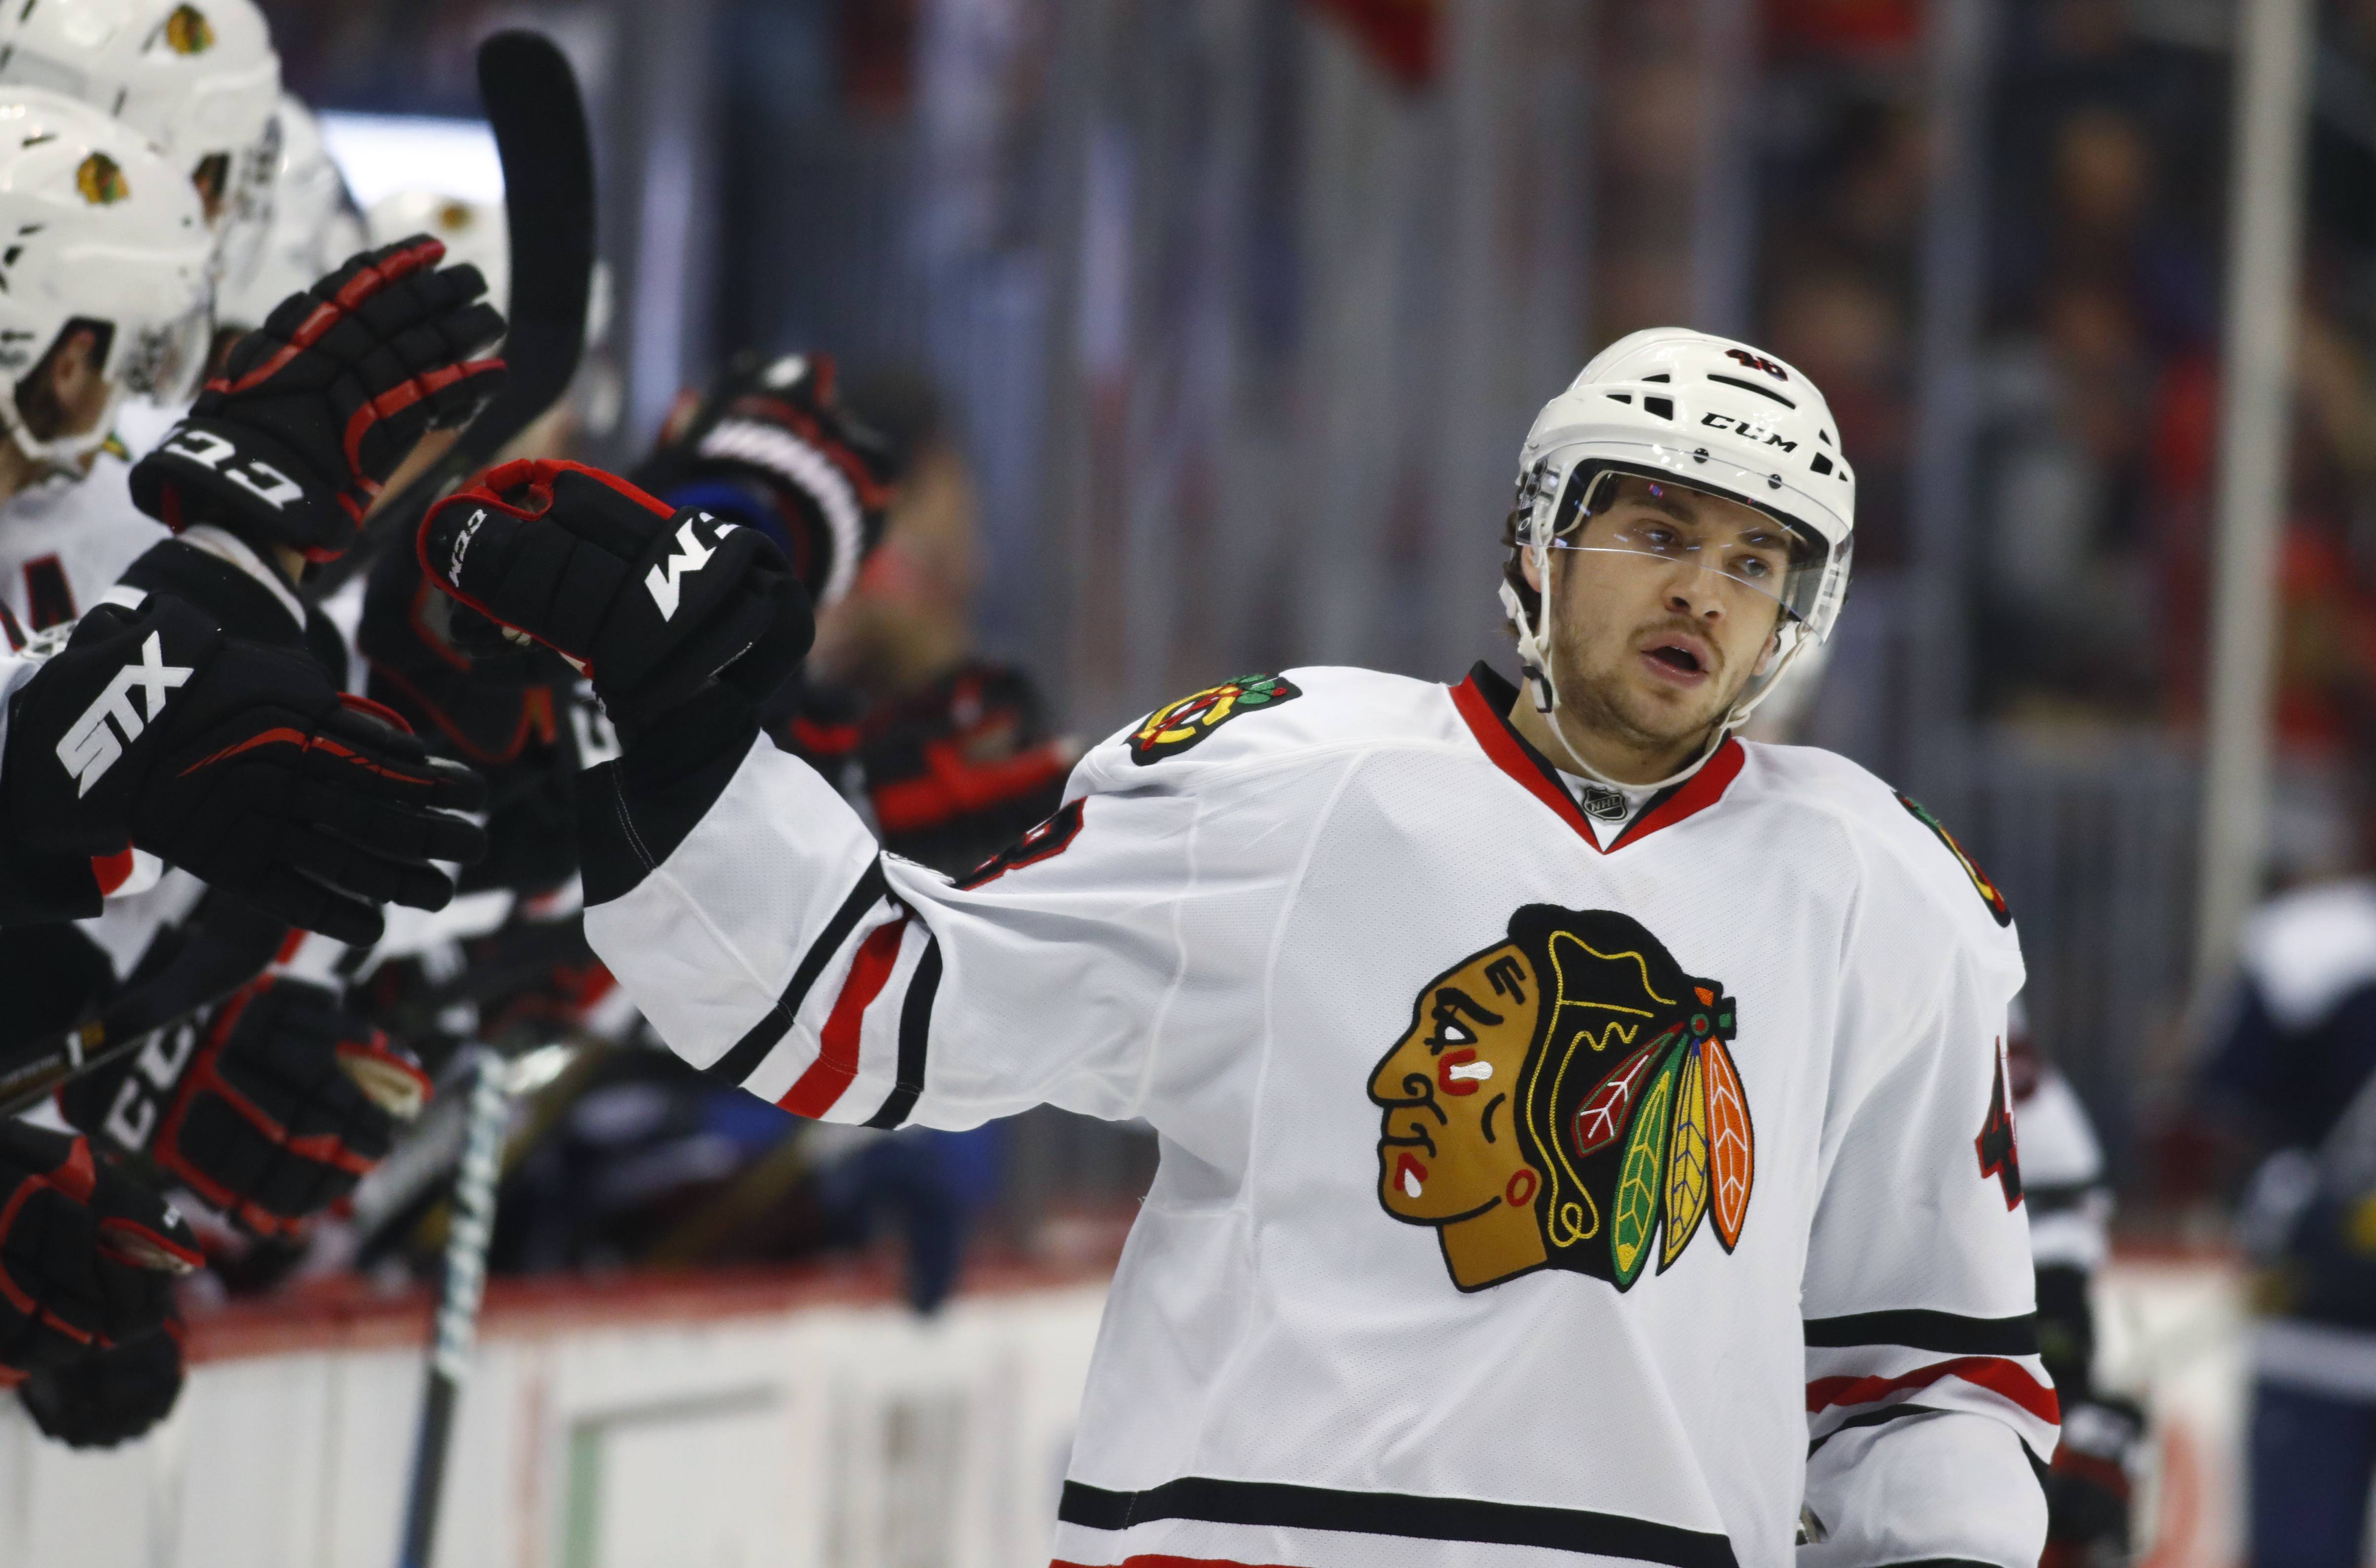 Left wing Vinnie Hinostroza played 56 games with the Blackhawks last season and another 86 down in Rockford. Hinostroza is one of seven forwards trying to earn a spot on the roster before the regular season starts.